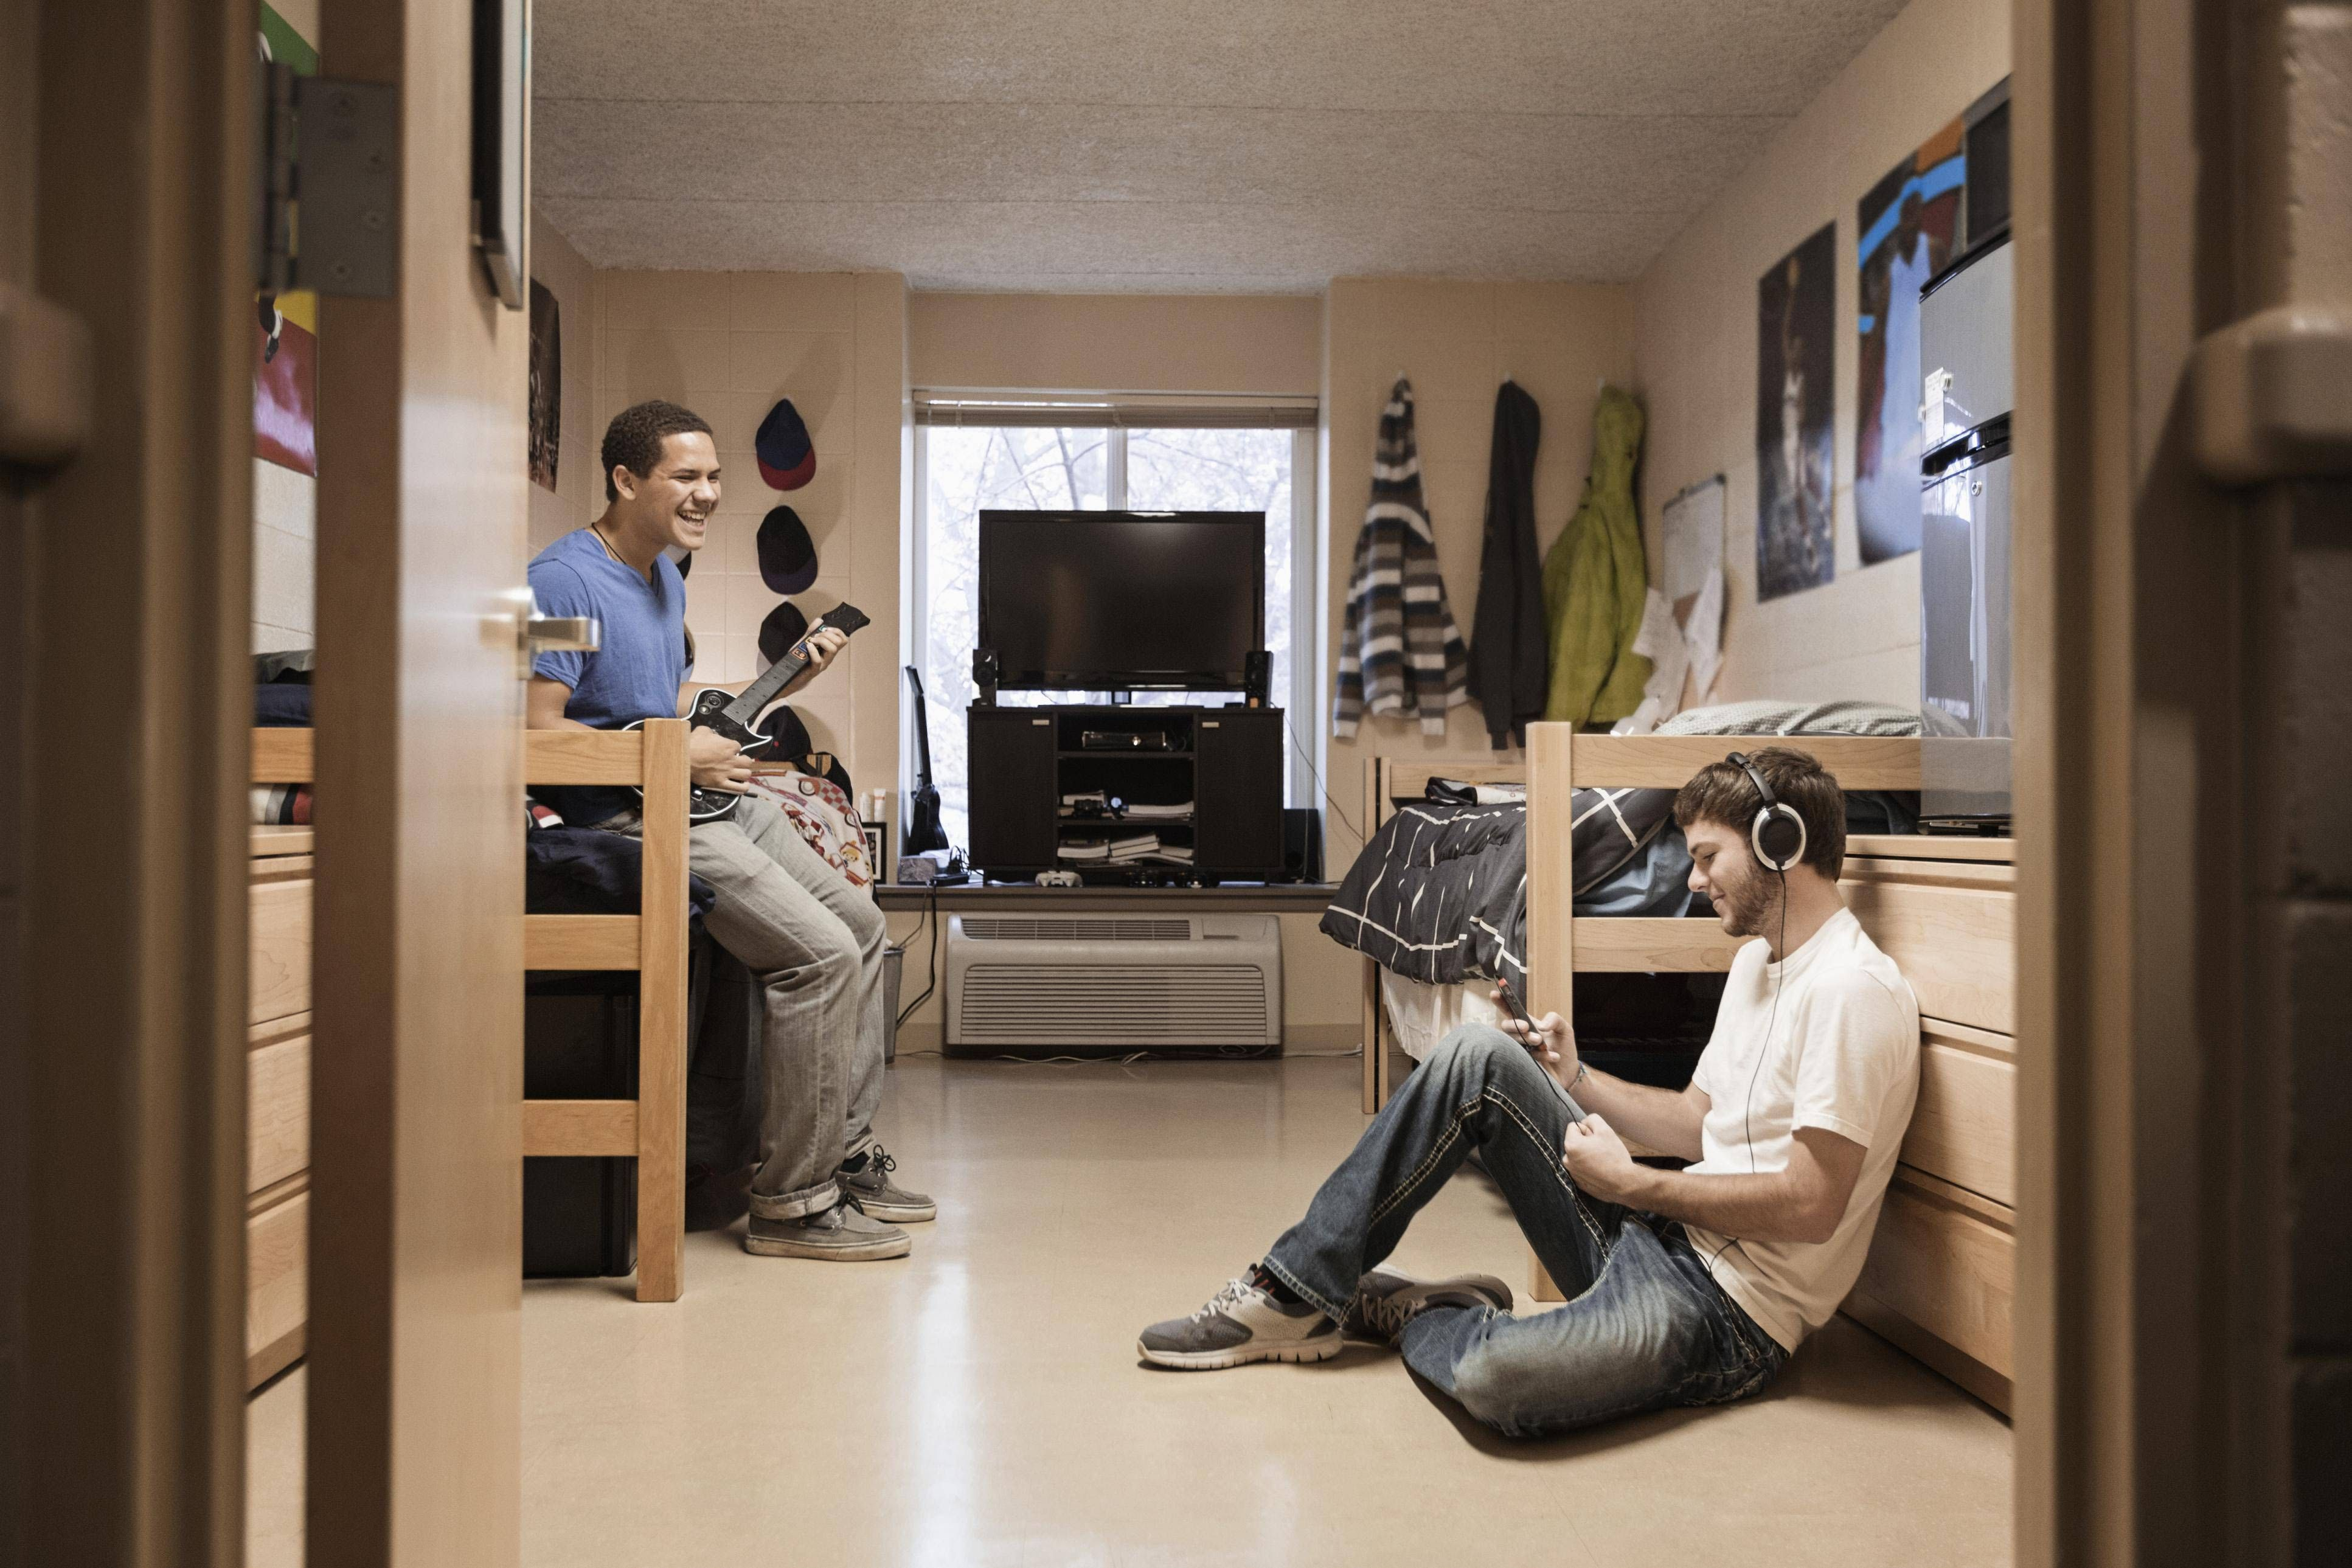 how to find a college roommate off-campus